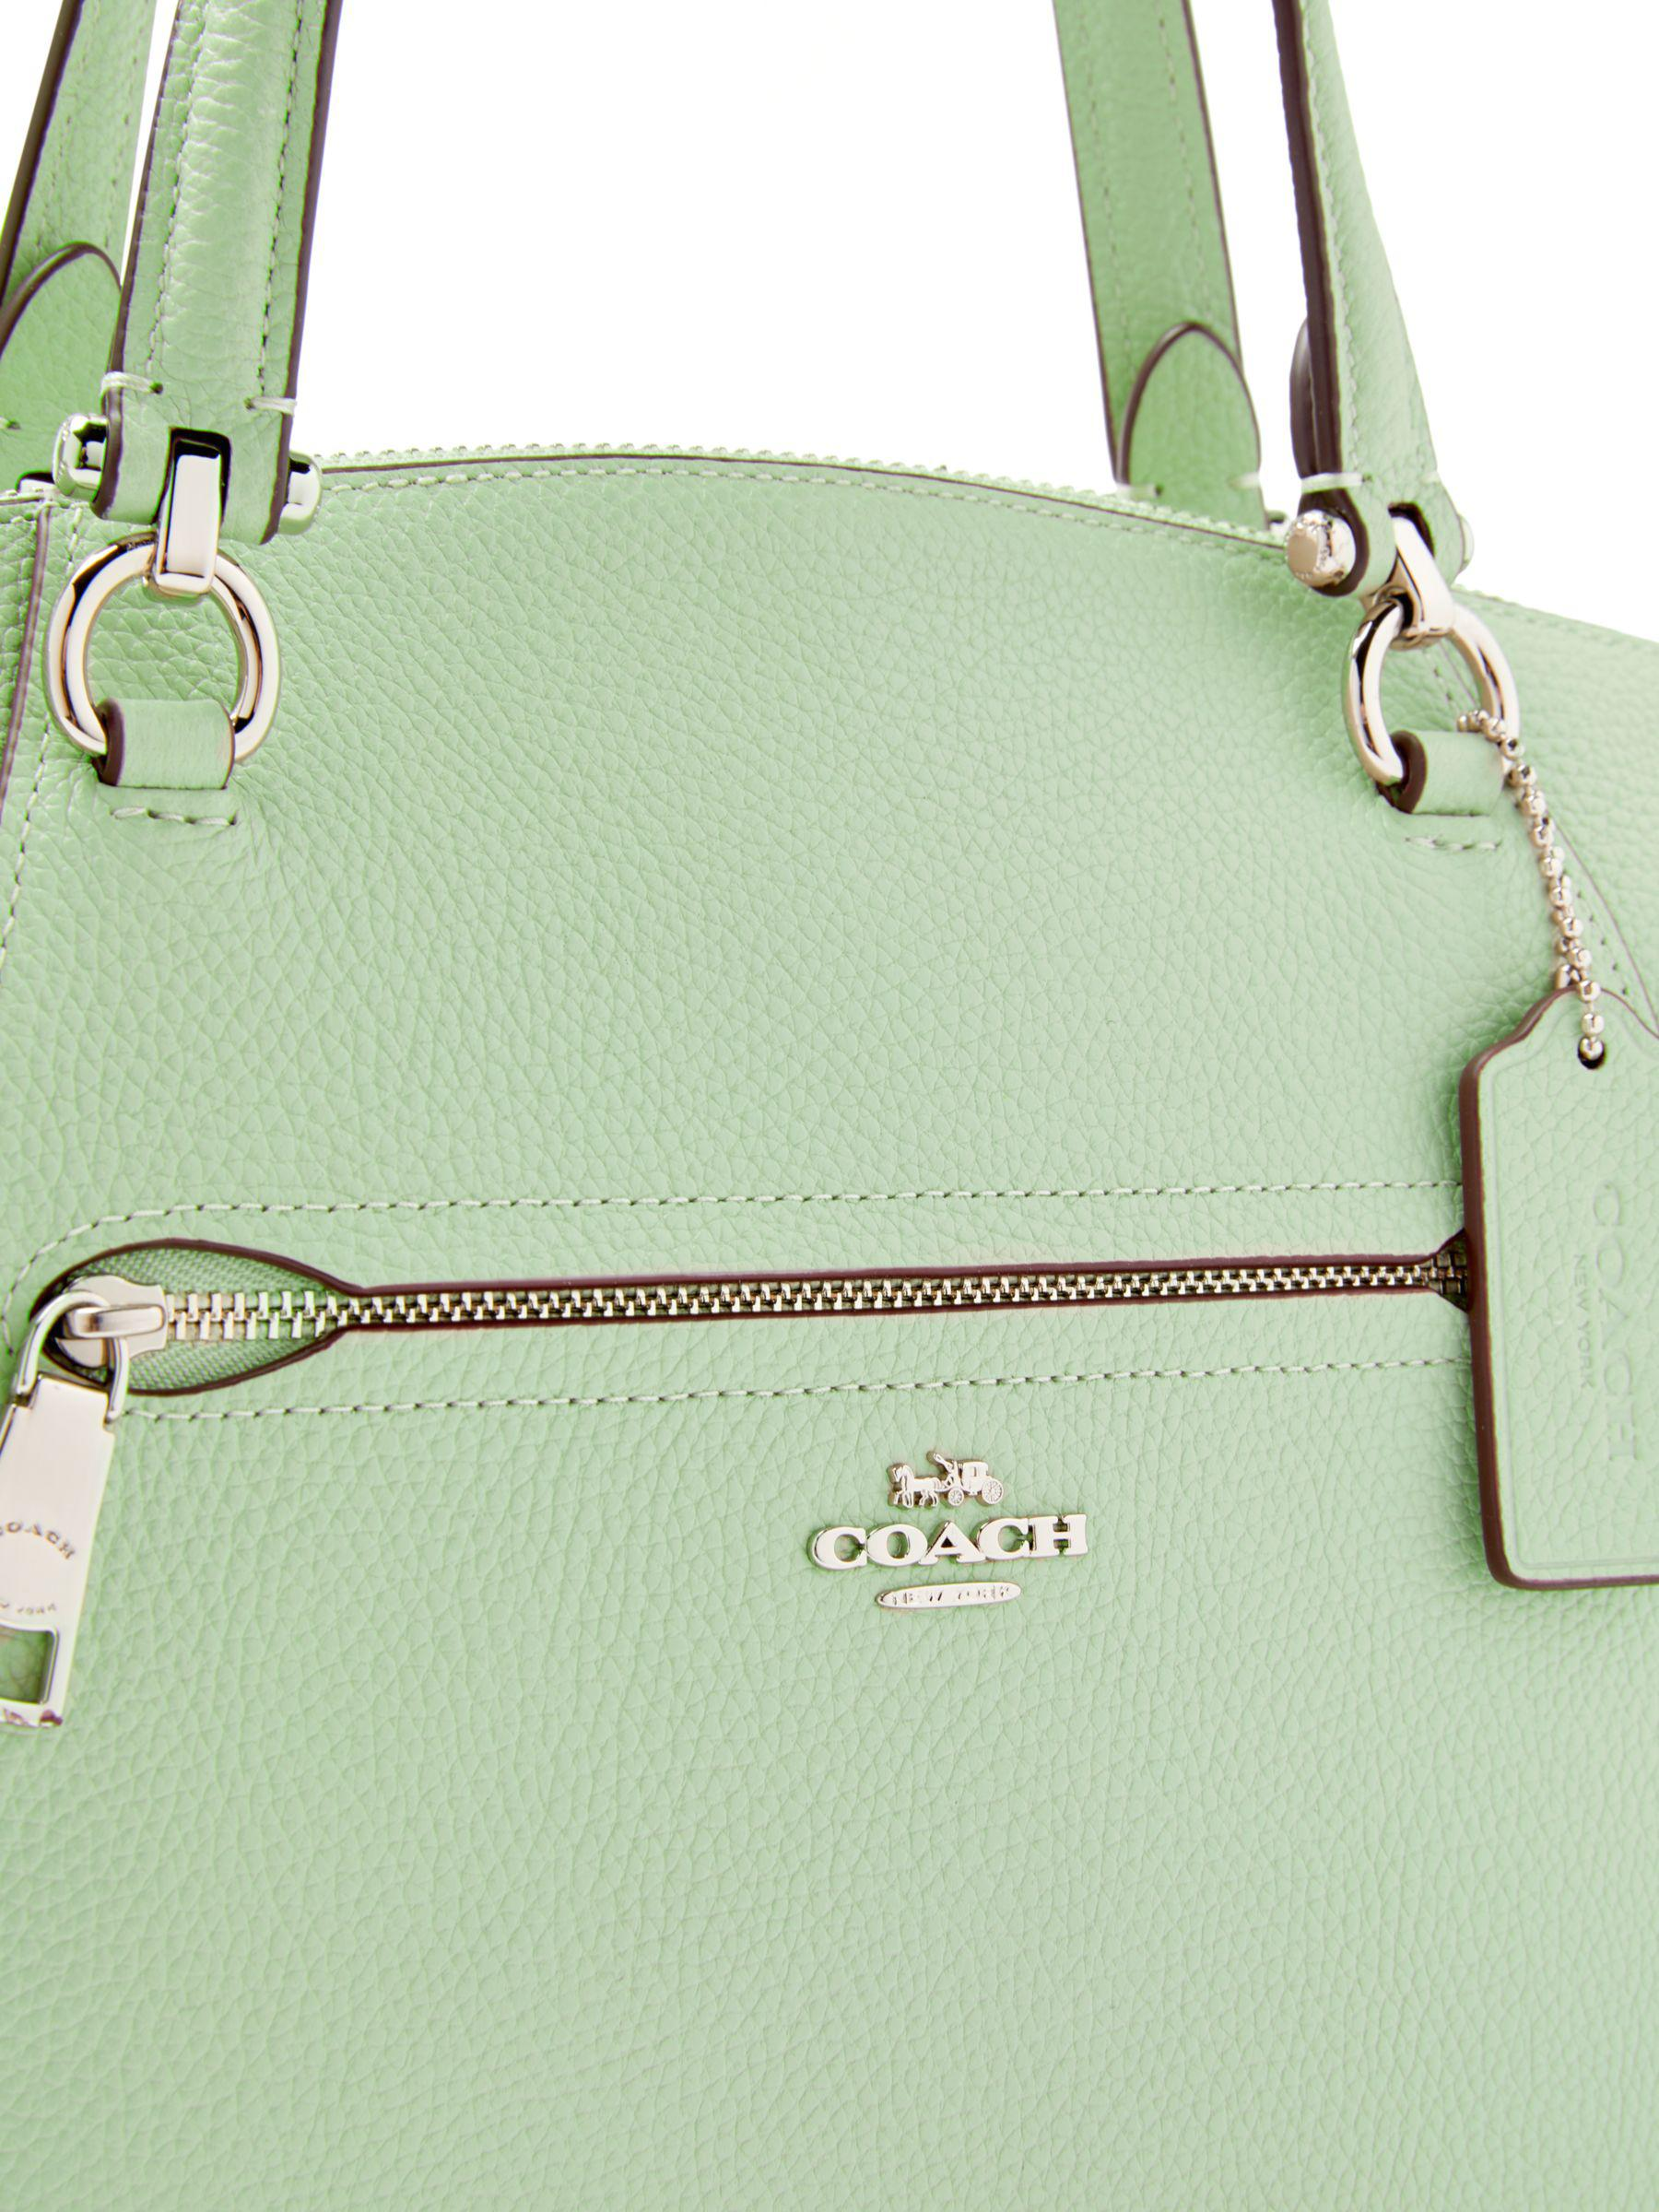 b57bebeb079 ... shop john lewis coach prairie pebble leather satchel bag in green lyst  6621e e0066 ...